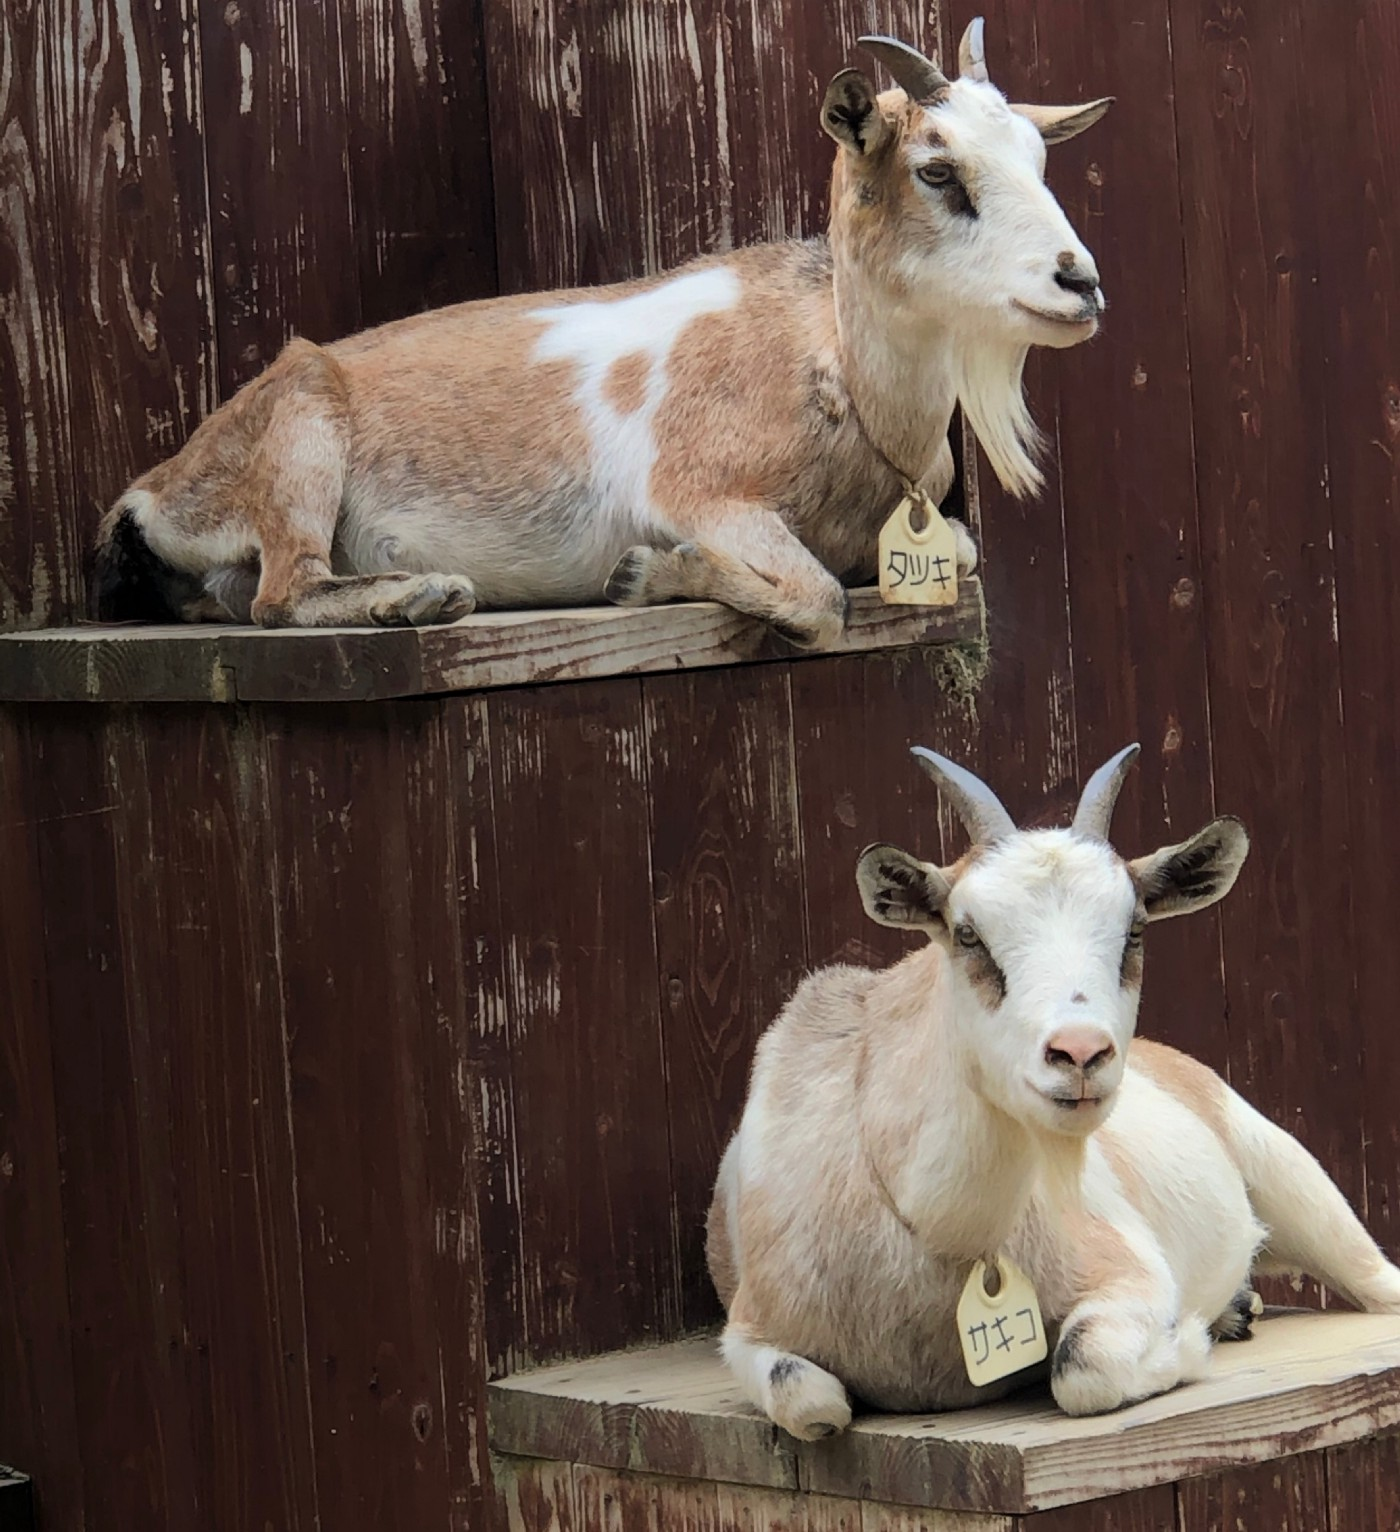 Pet goats resting comfortably in a controlled living space